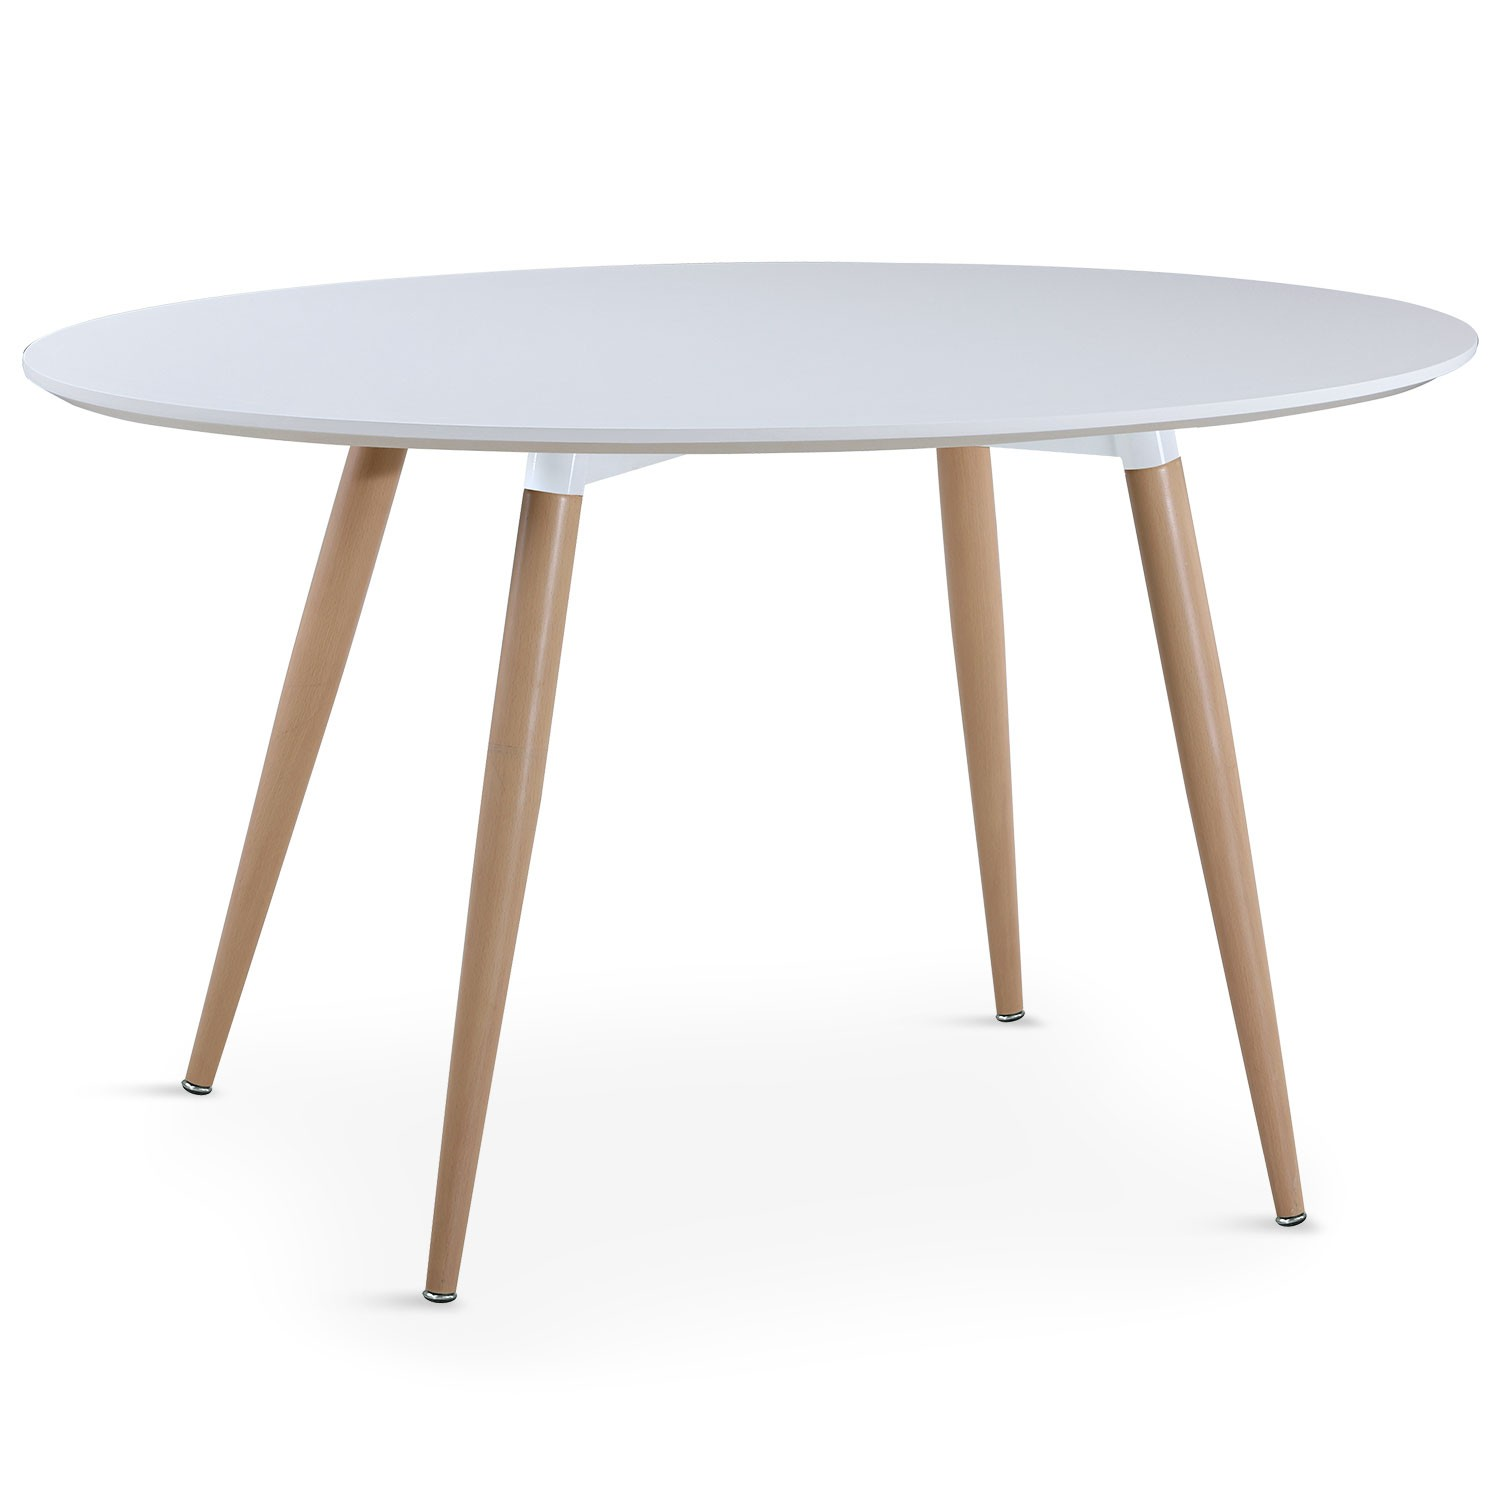 Table ovale scandinave lunea blanc table de repas for Table a rallonge design scandinave